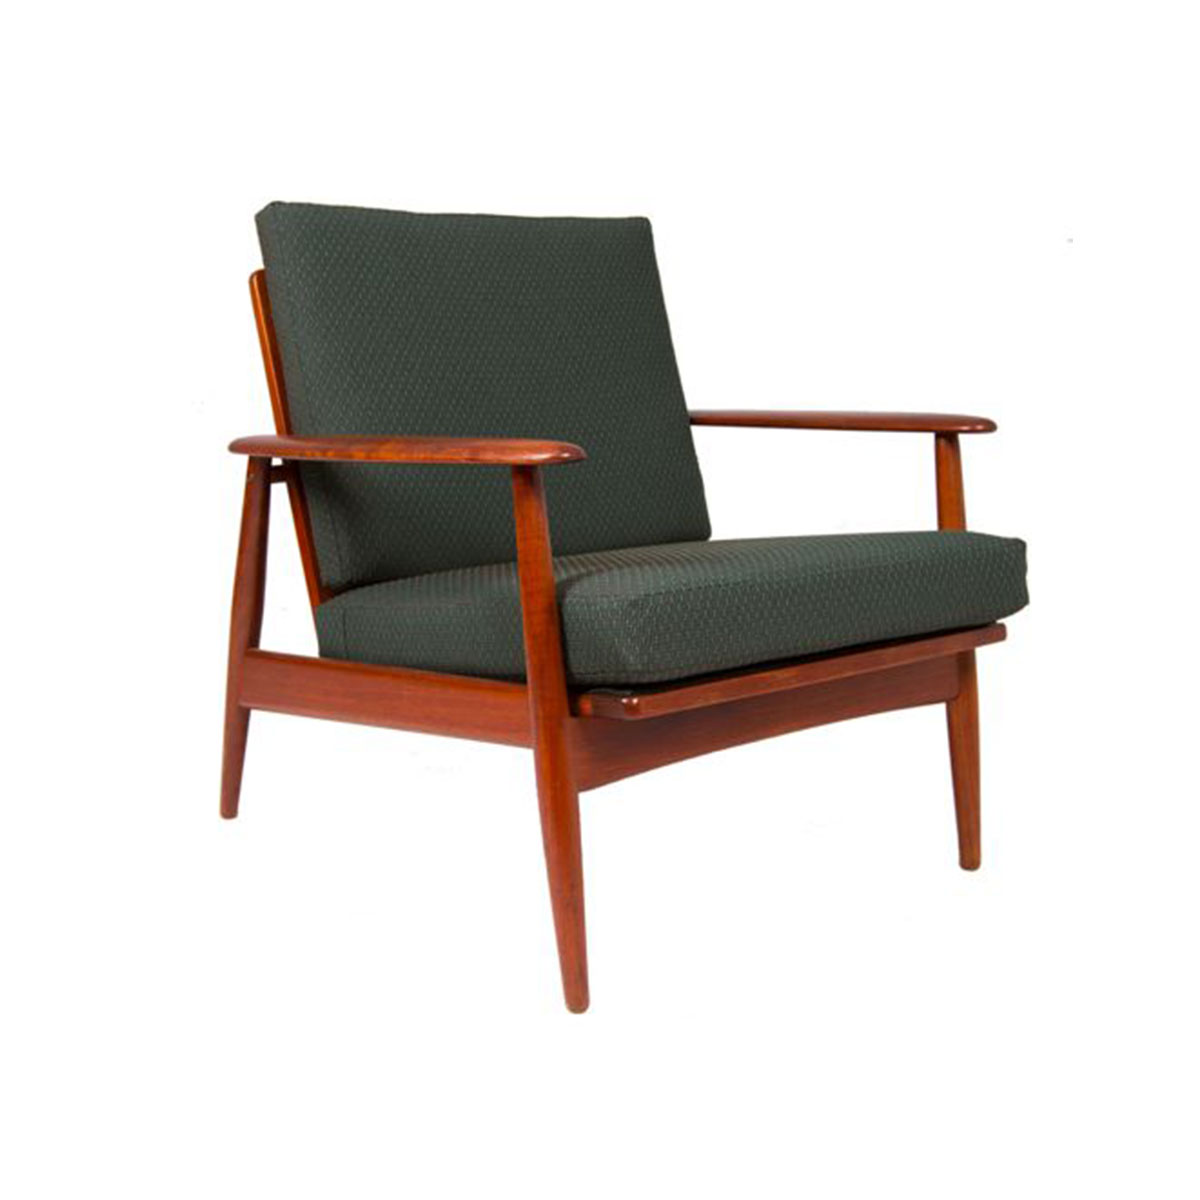 Danish Modern Walnut Lounge Chair with NEW UPHOLSTERY